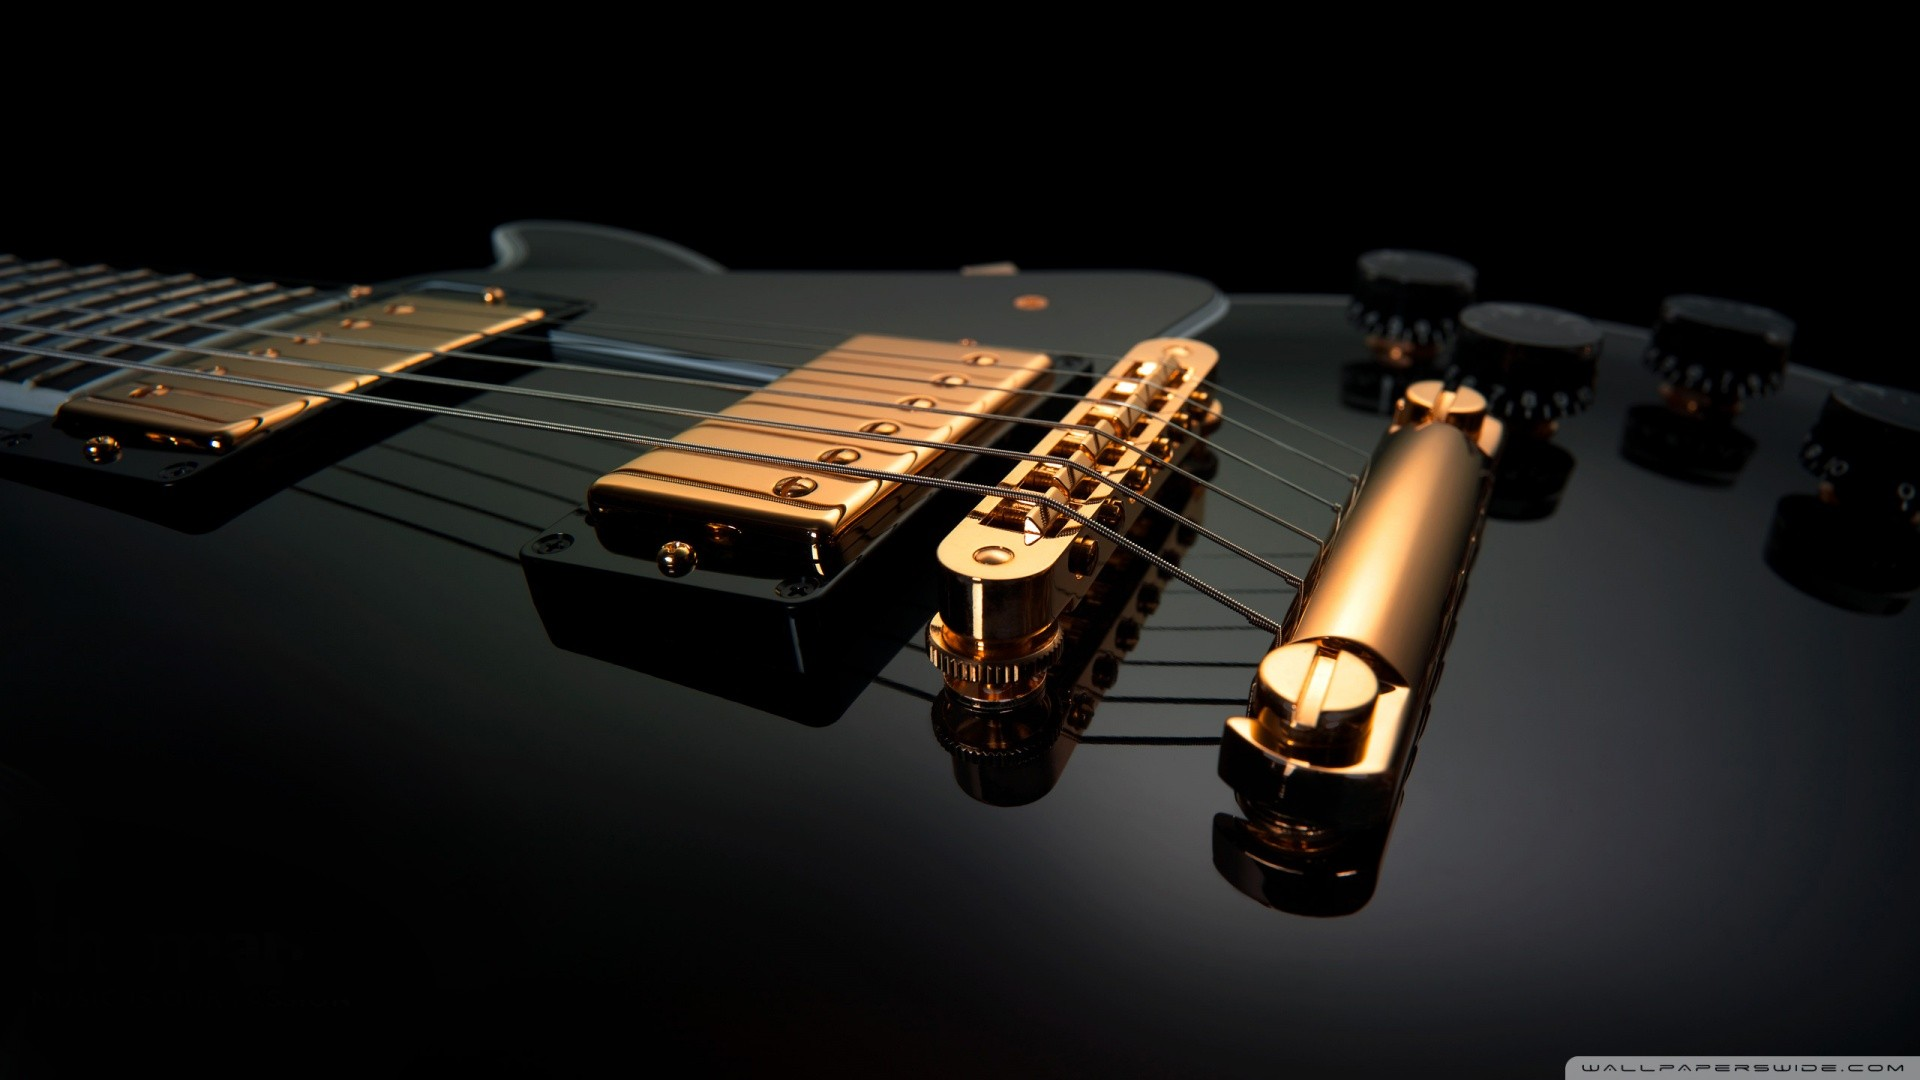 Black Guitar With Yellow Strings Wallpaper 1920x1080 px